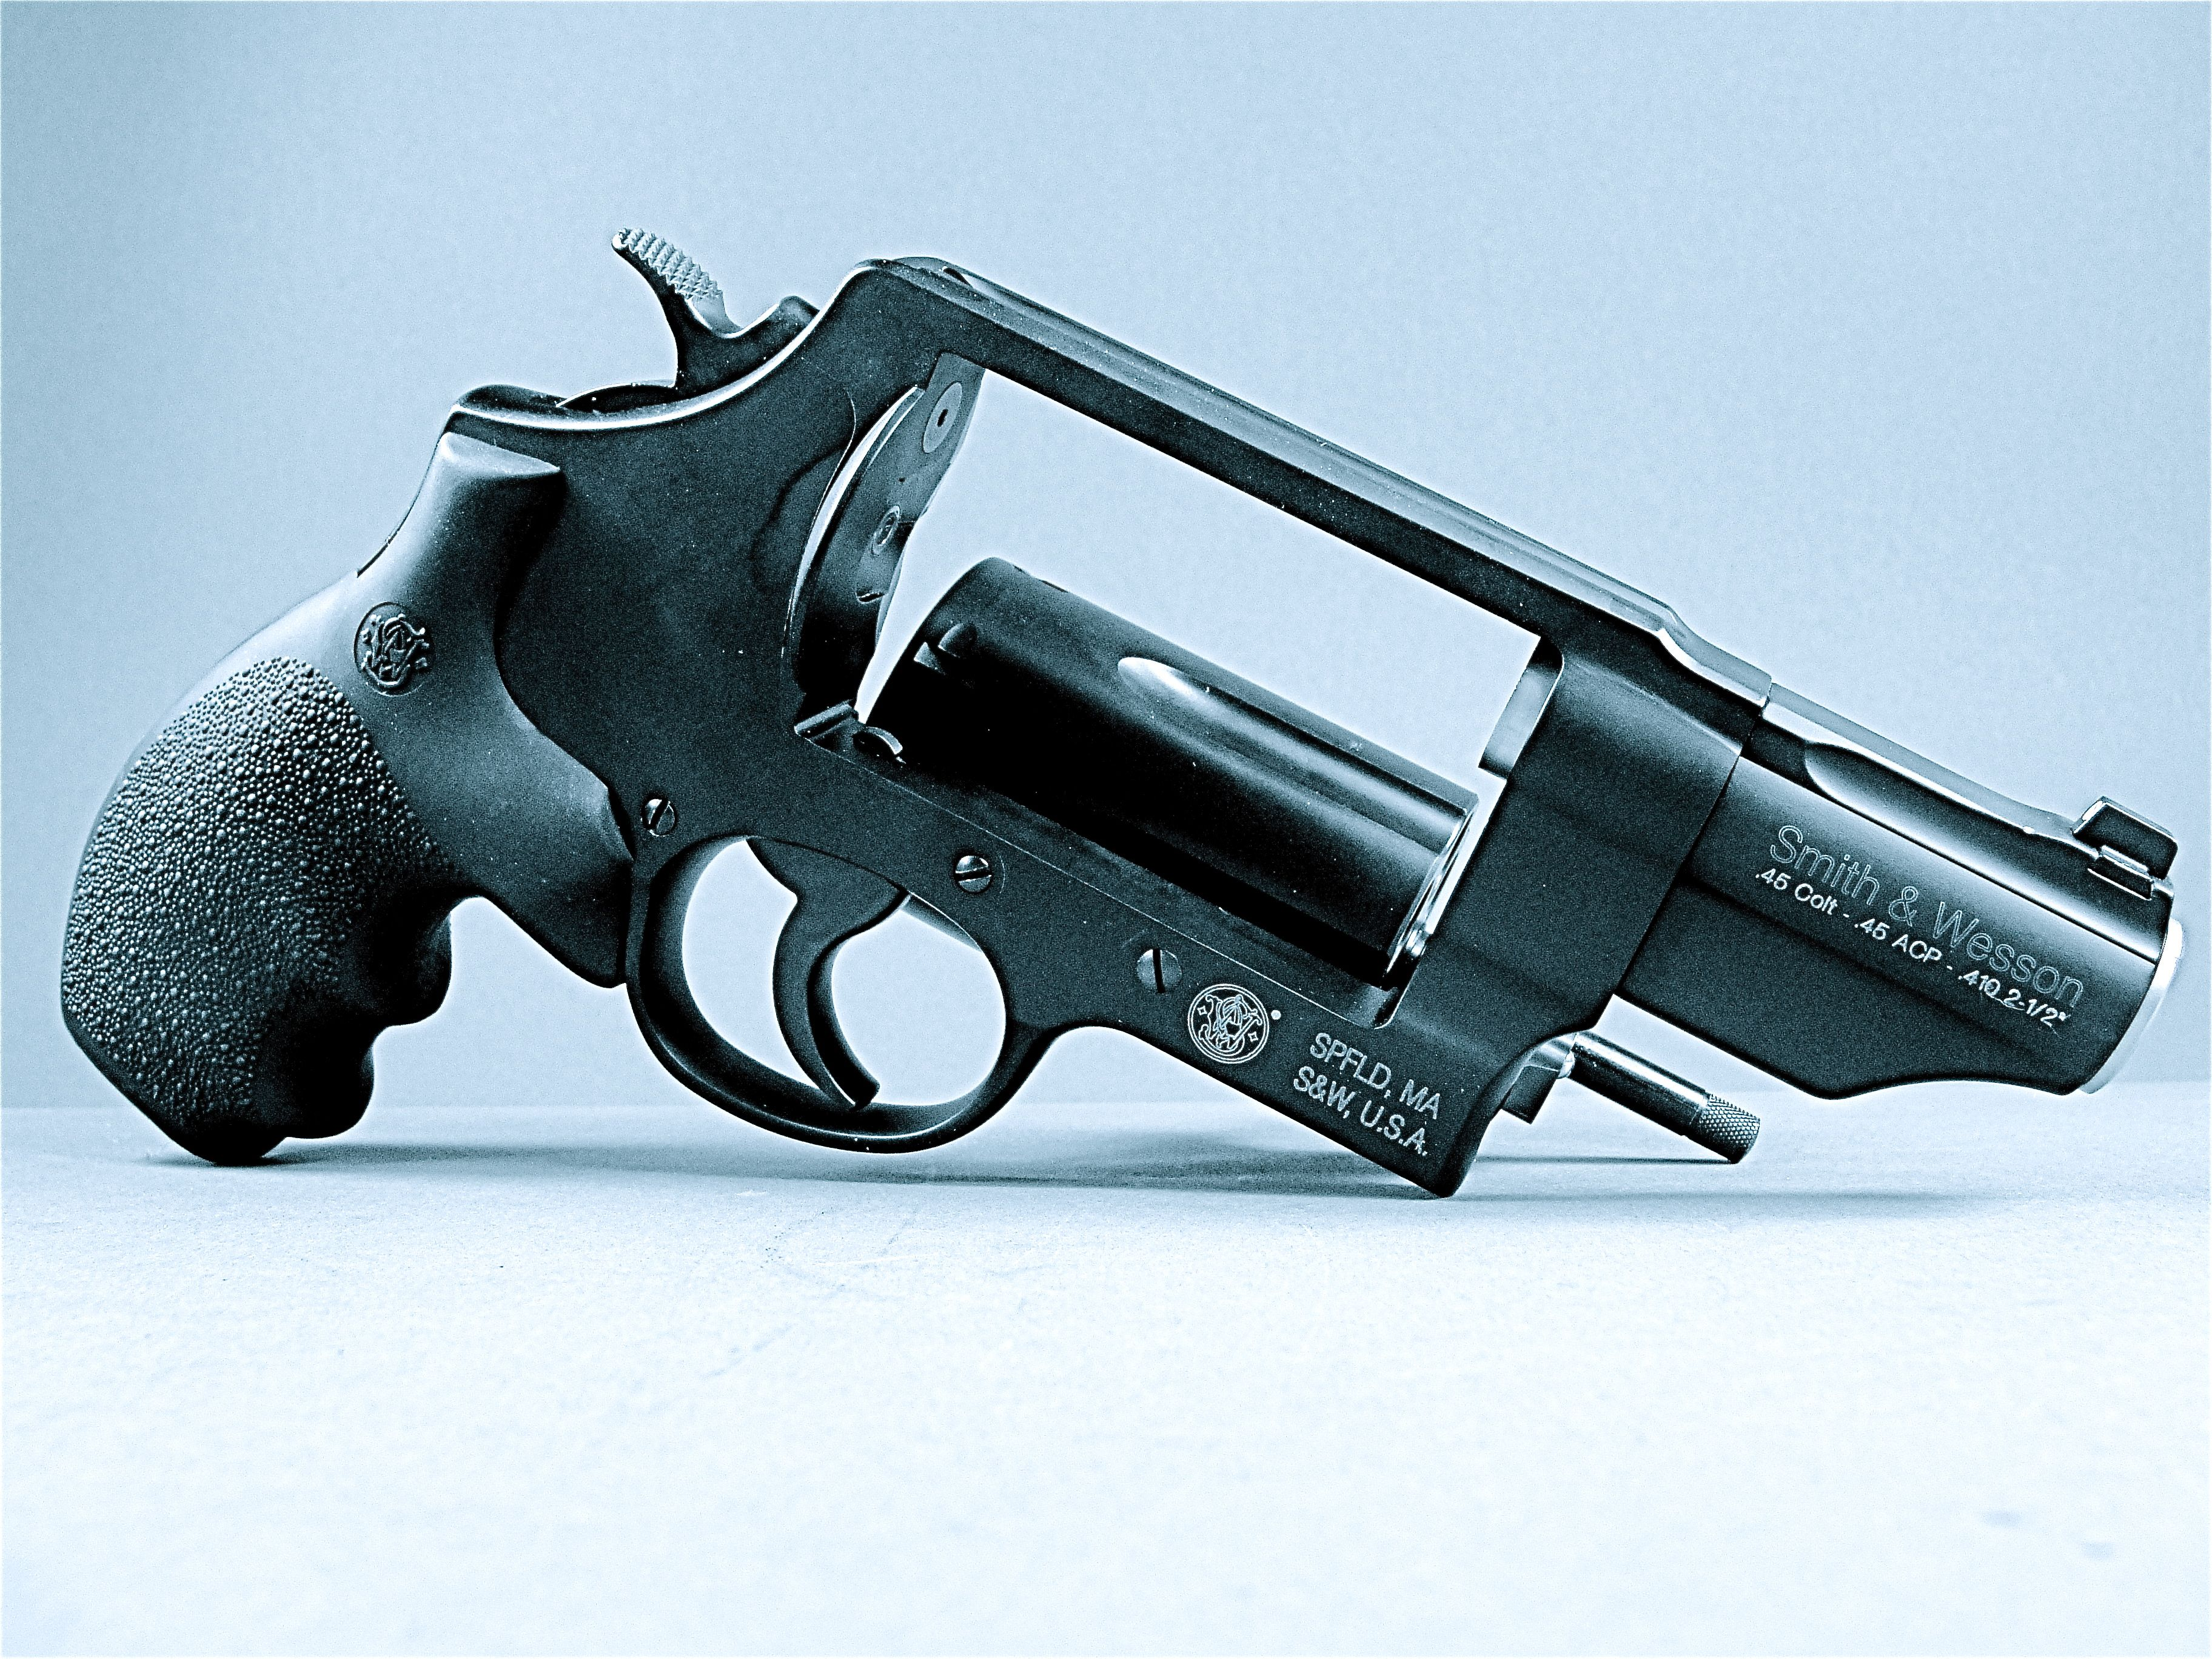 wesson single women These self-defense handguns will work for anyone, but they're especially popular with women.